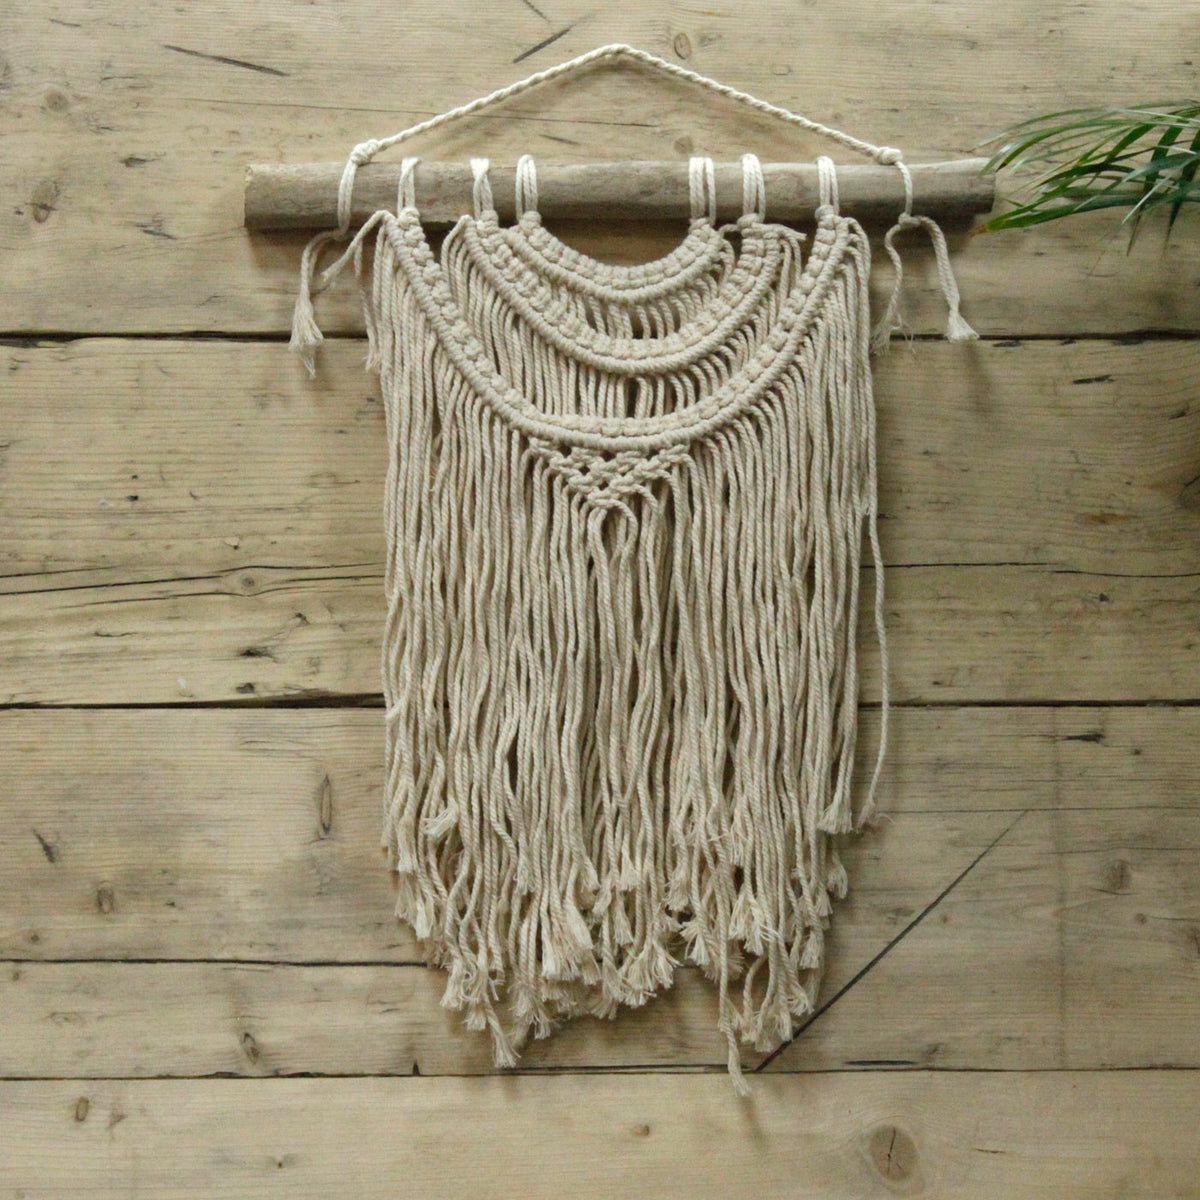 Macrame Wall Hanging - Three Waves - Seashore No4